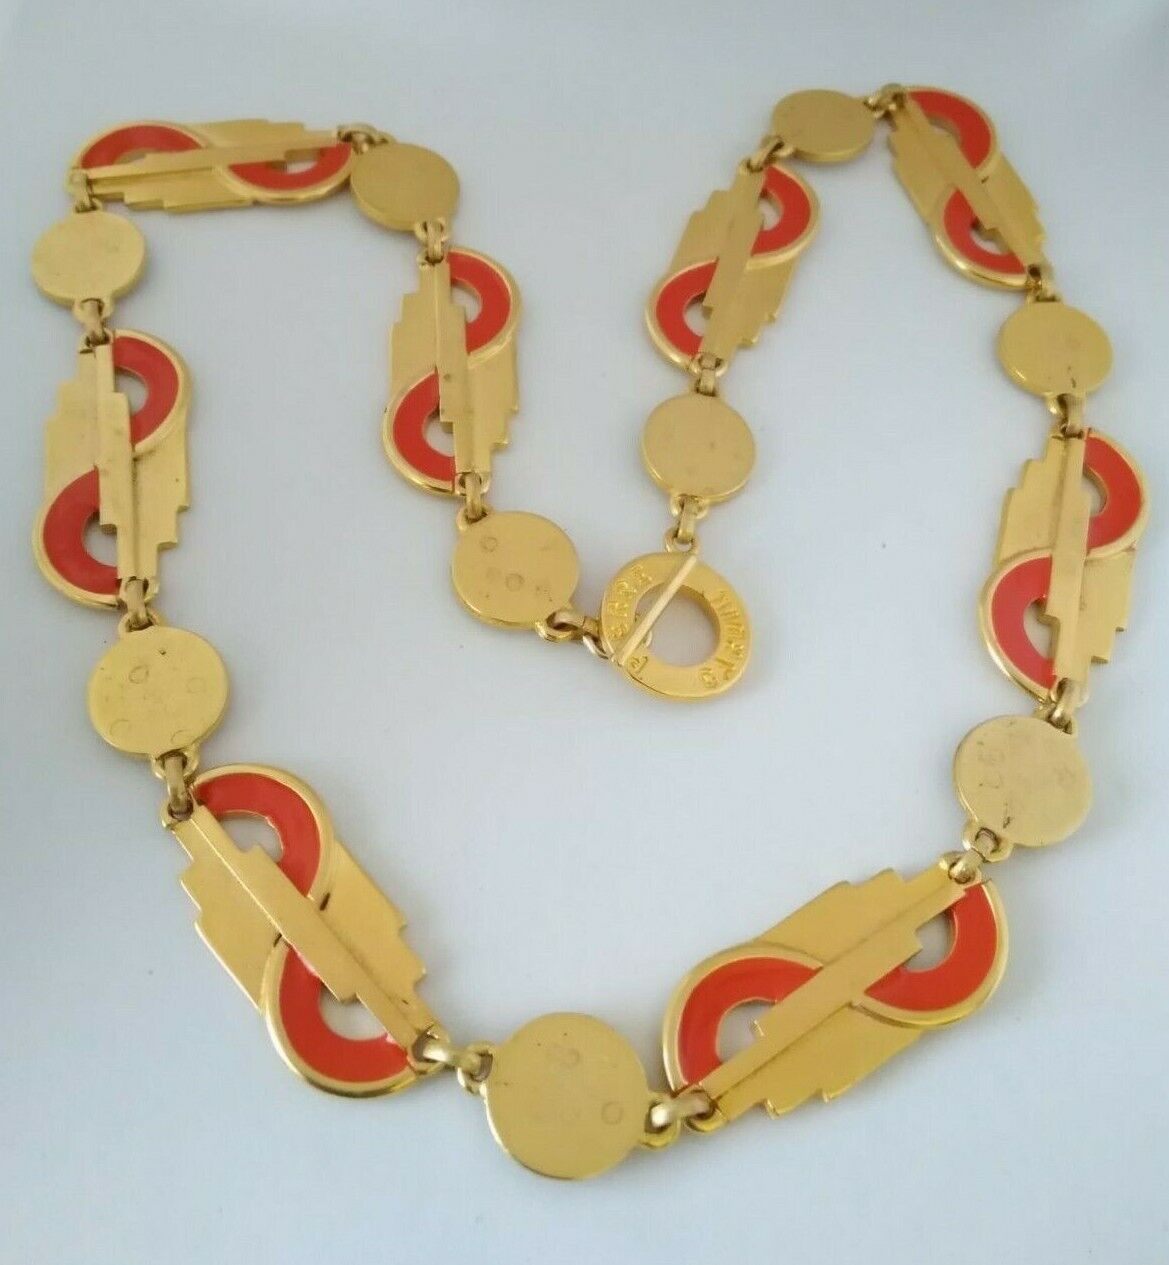 Ancient Necklace Vintage Years 70/80, NECKLACE Metal Enamel and Gold Color-show original title